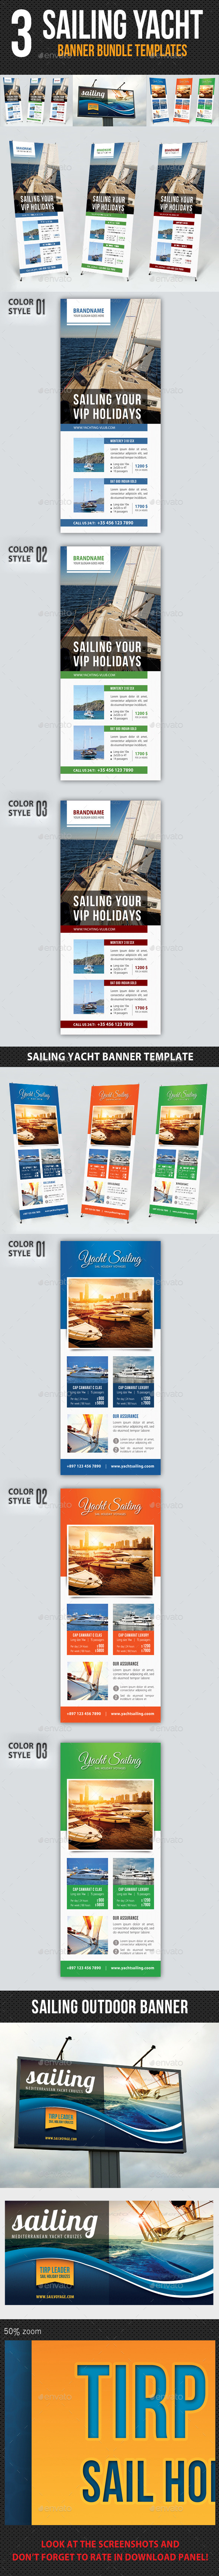 3 in 1 Sailing Yacht Banner Bundle 02 - Signage Print Templates